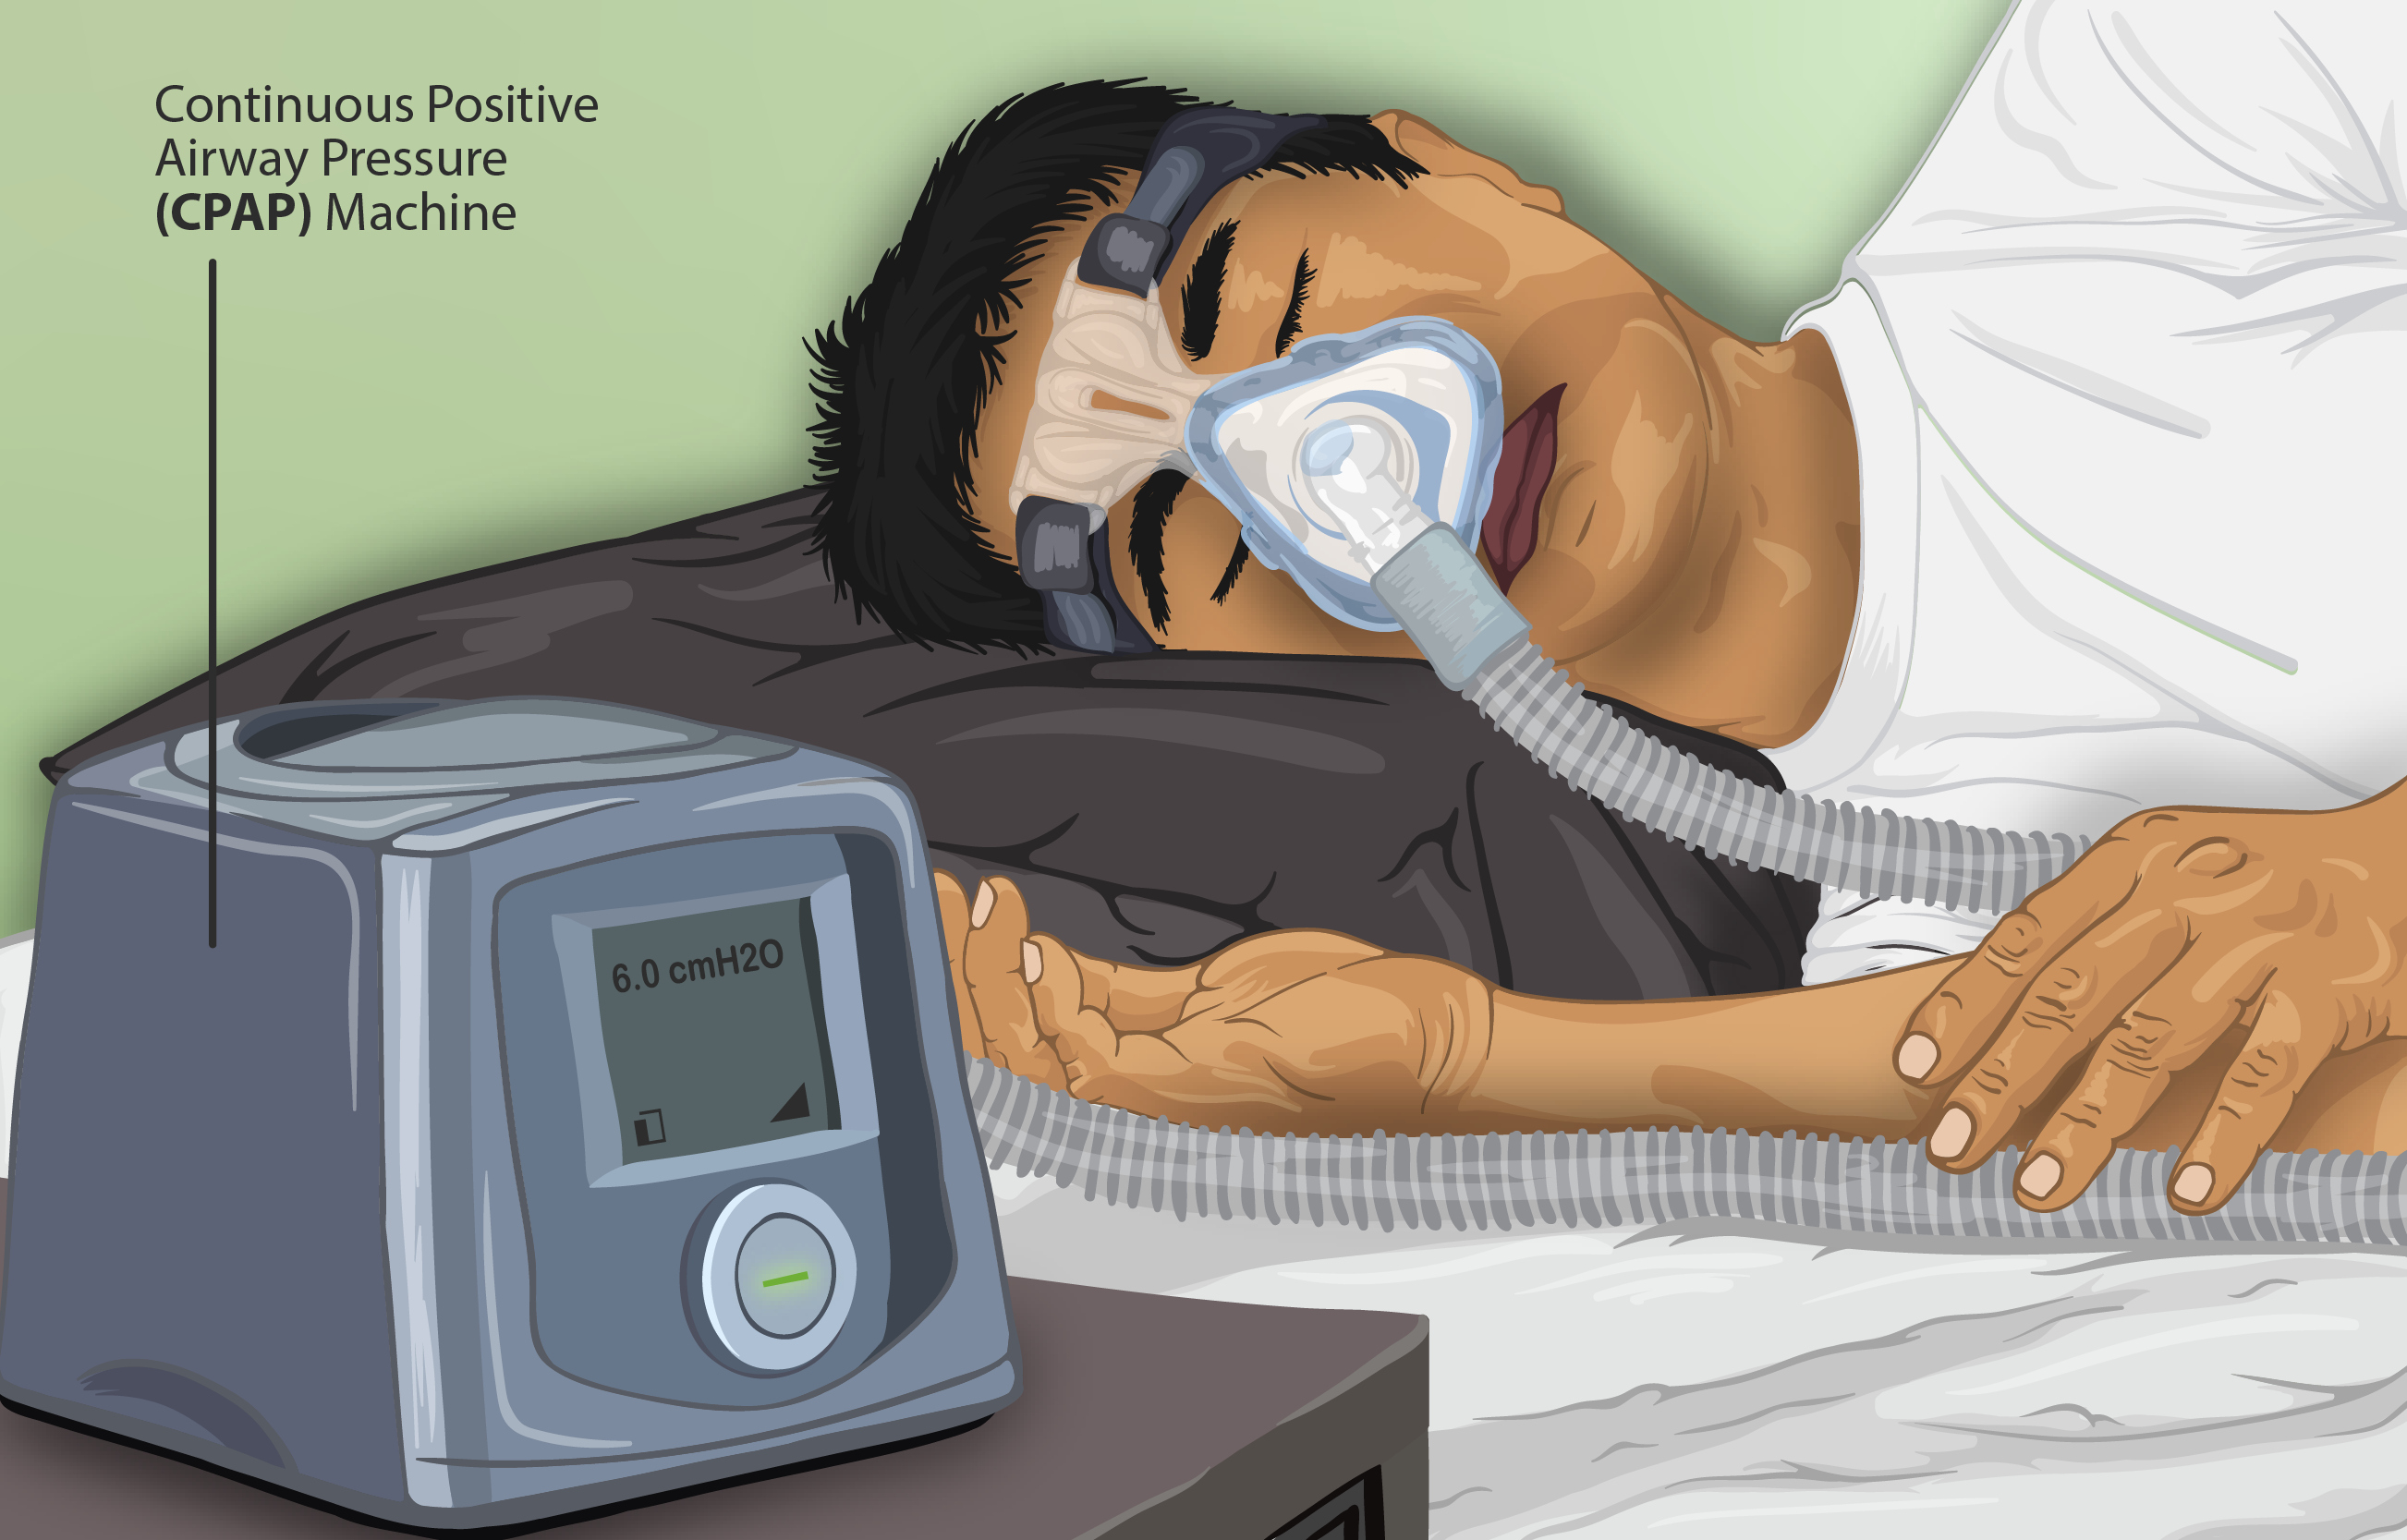 File:Depiction of a Sleep Apnea patient using a CPAP machine.png ...